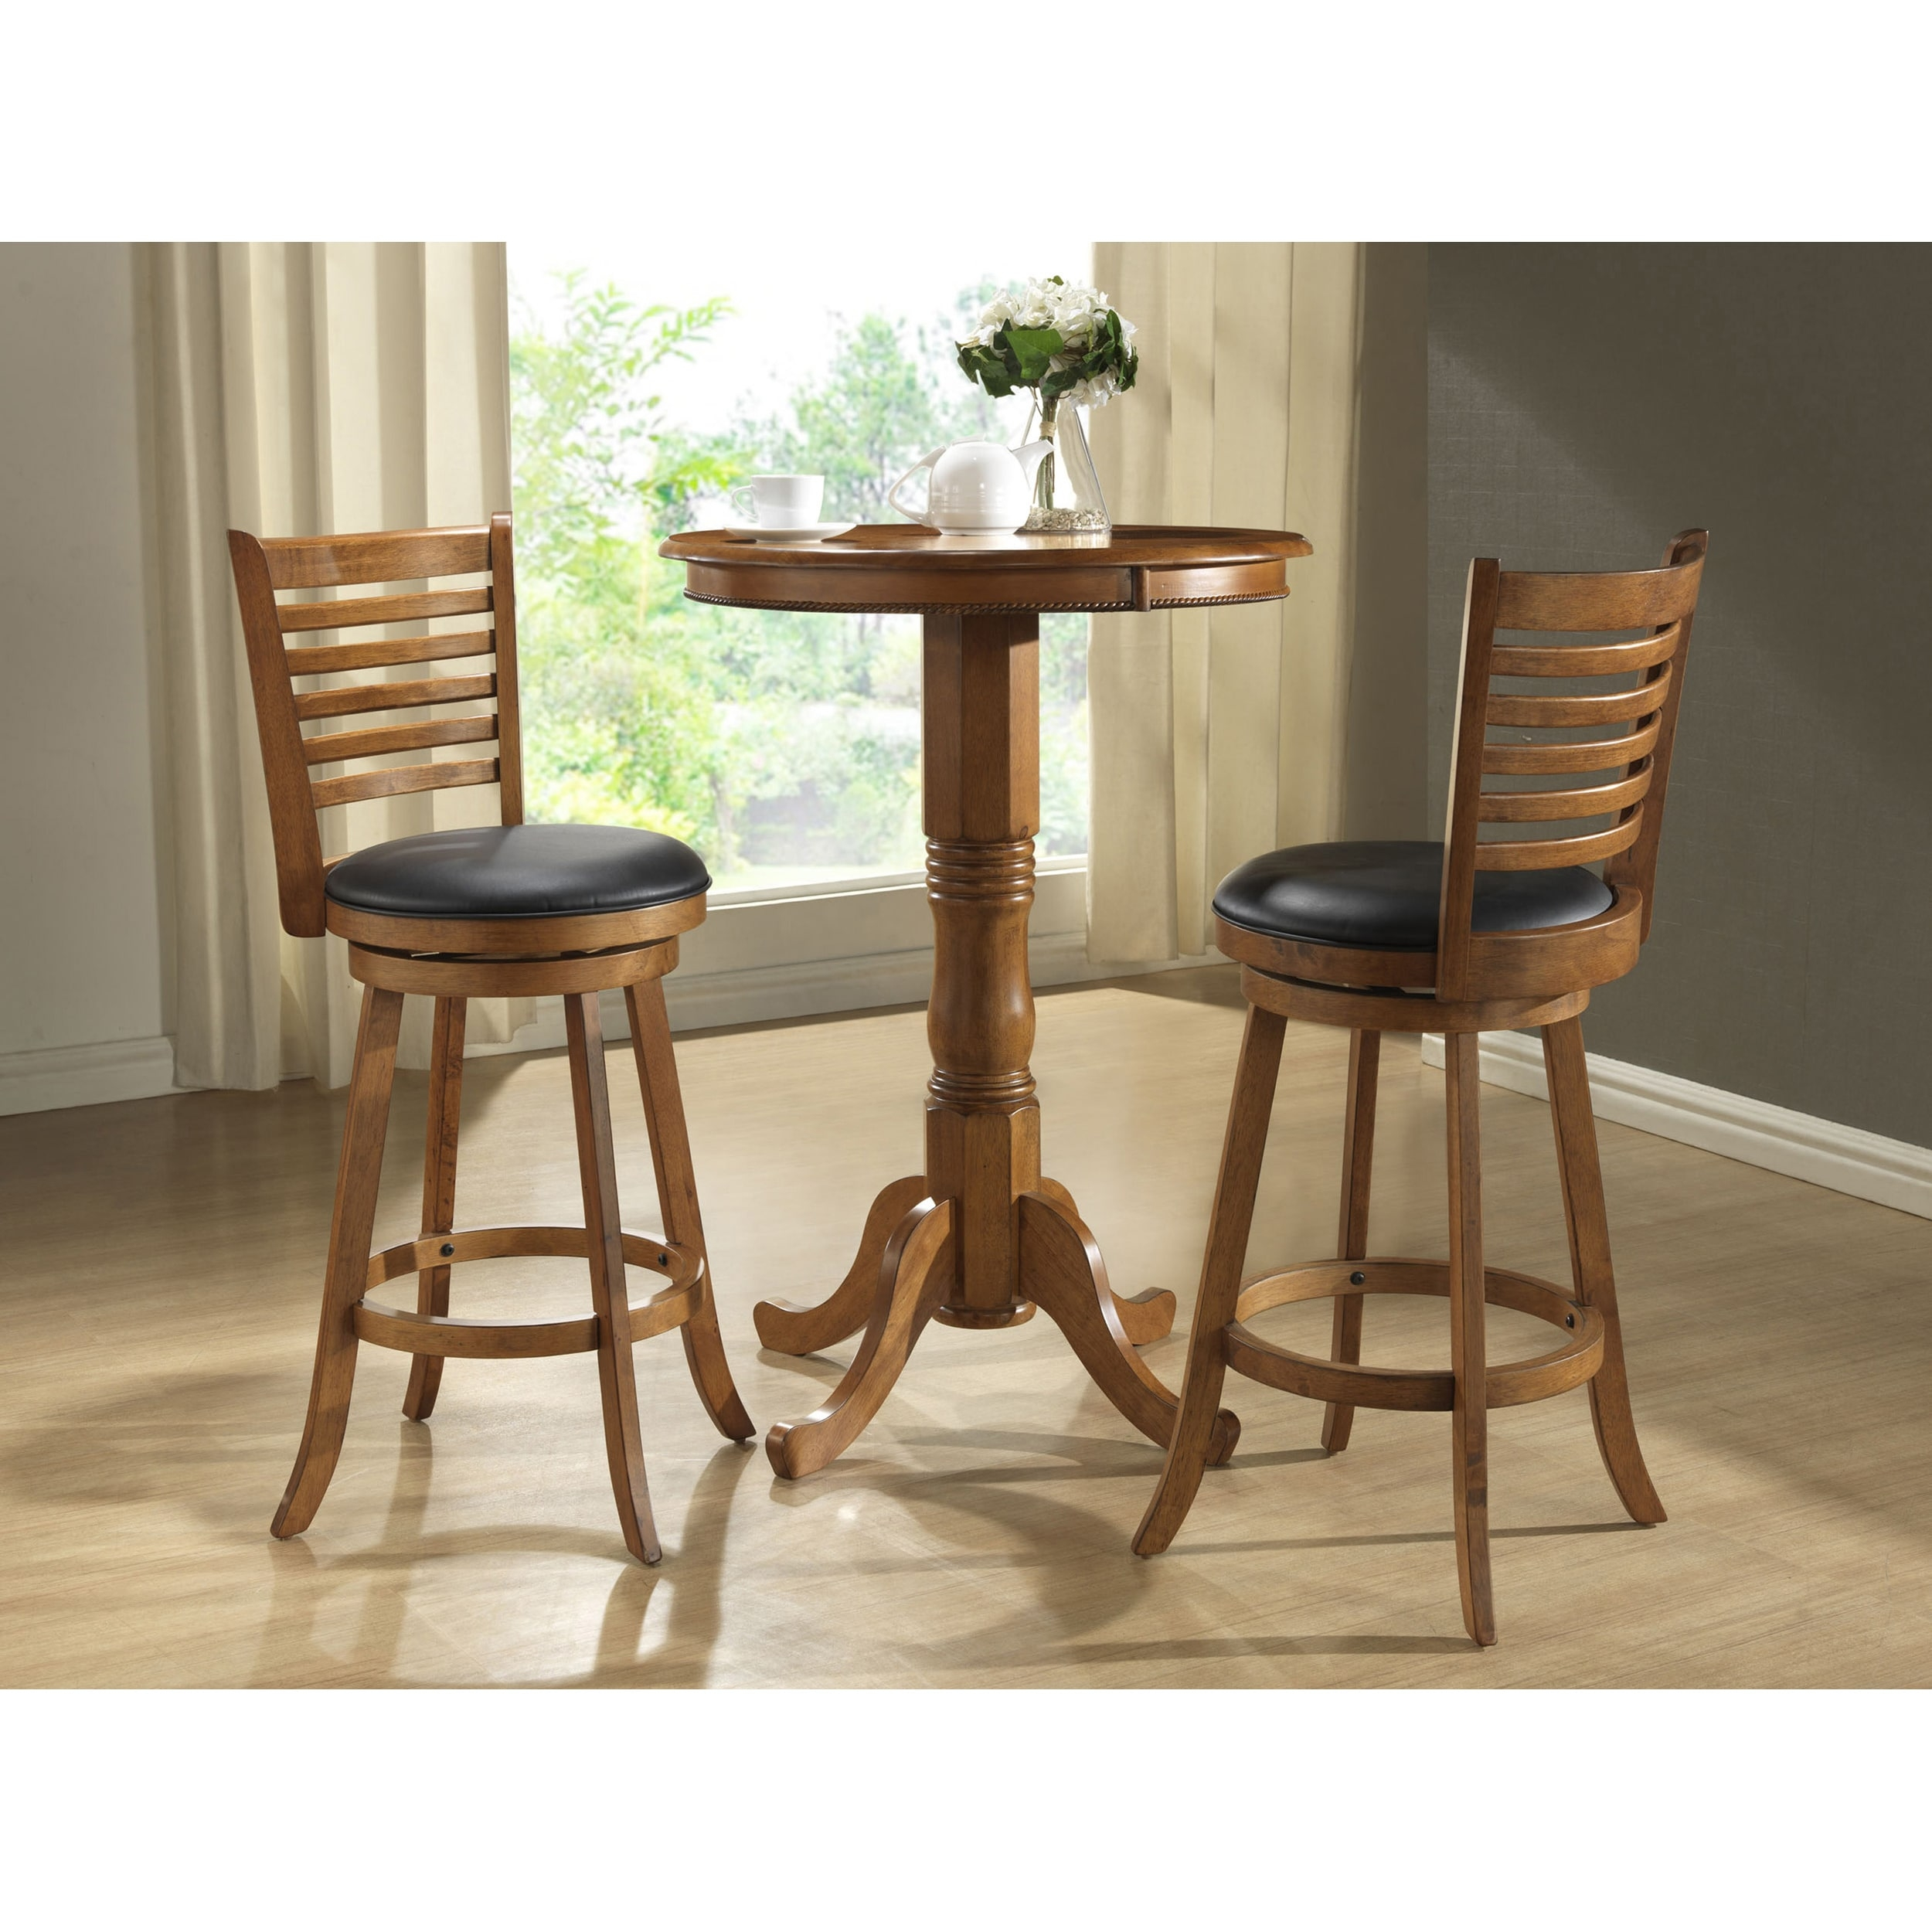 Oak pub table set  sc 1 st  Foter & Oak Pub Table Set - Foter